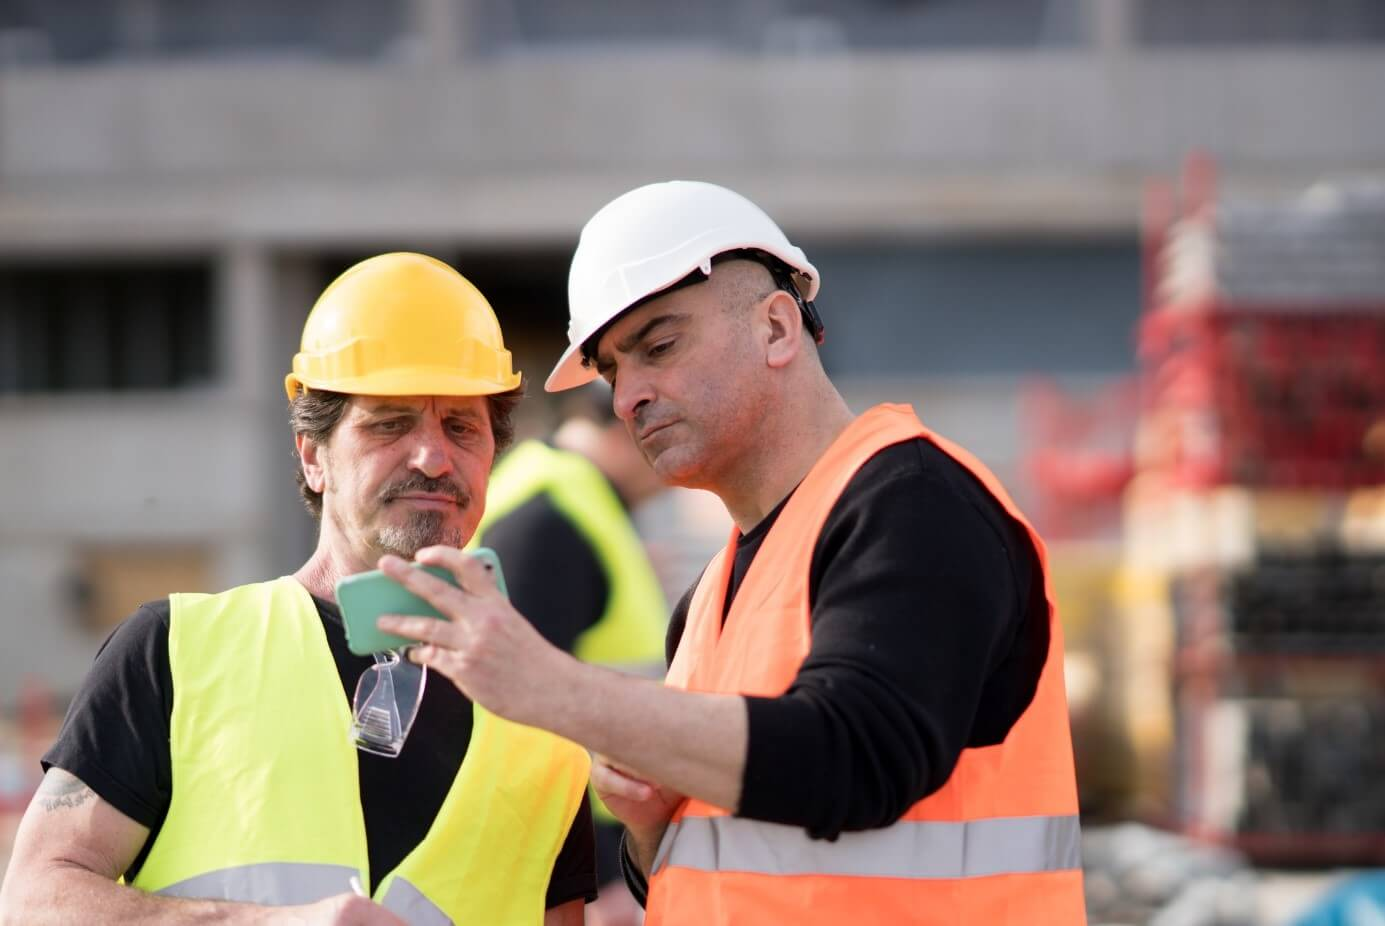 Two construction workers with one smartphone